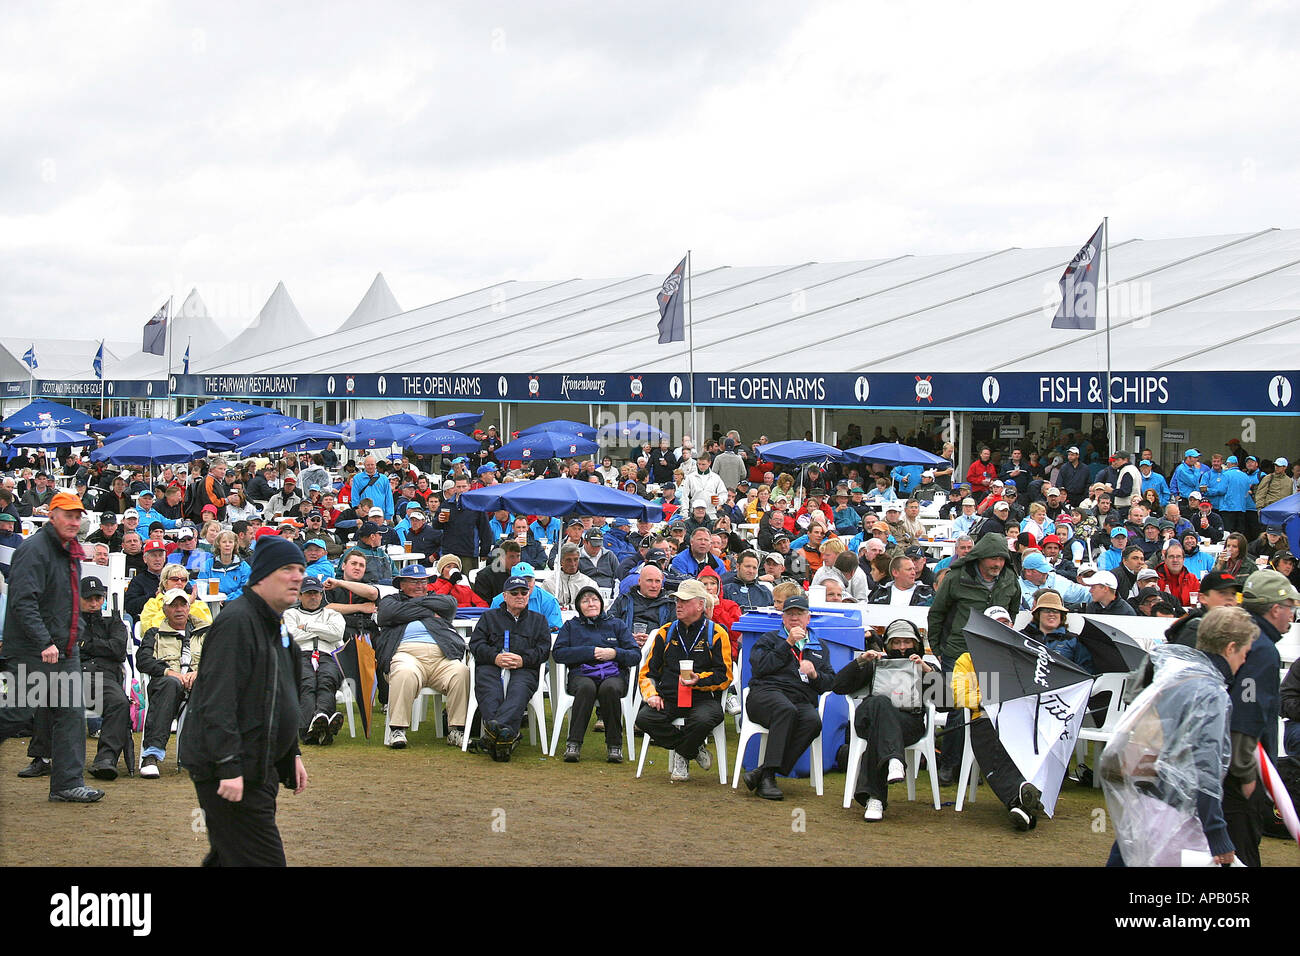 Golf fans at British open golf championship 2007 Carnoustie tented village - Stock Image